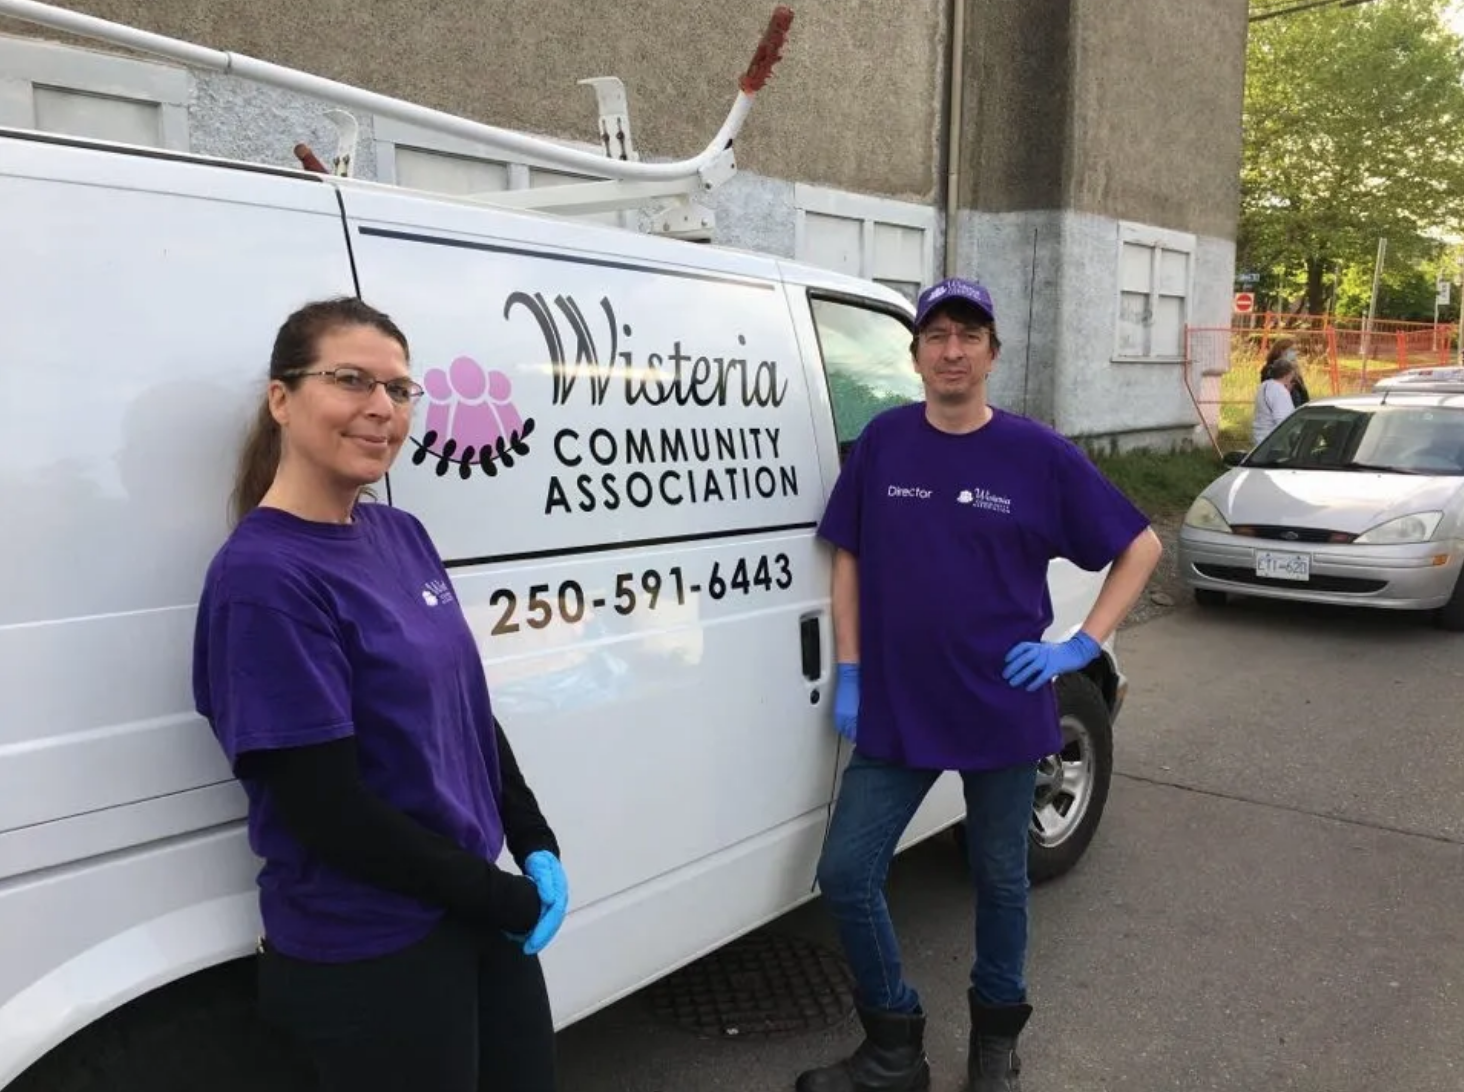 two people wearing purple shirts standing against a white truck